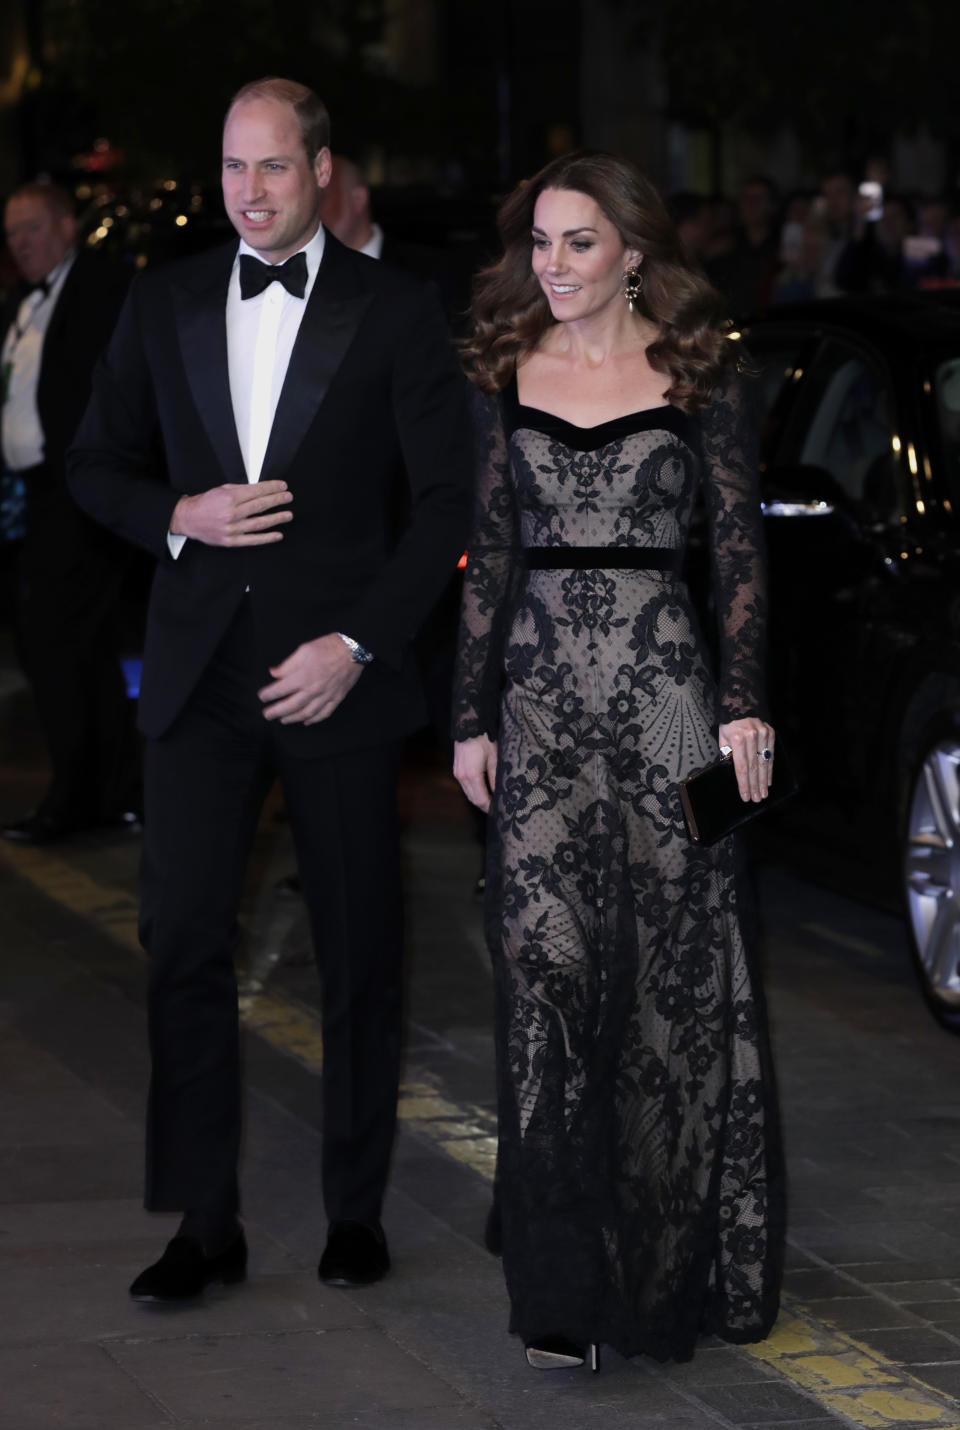 The Duke and Duchess of Cambridge coordinated in black. [Photo: Getty]